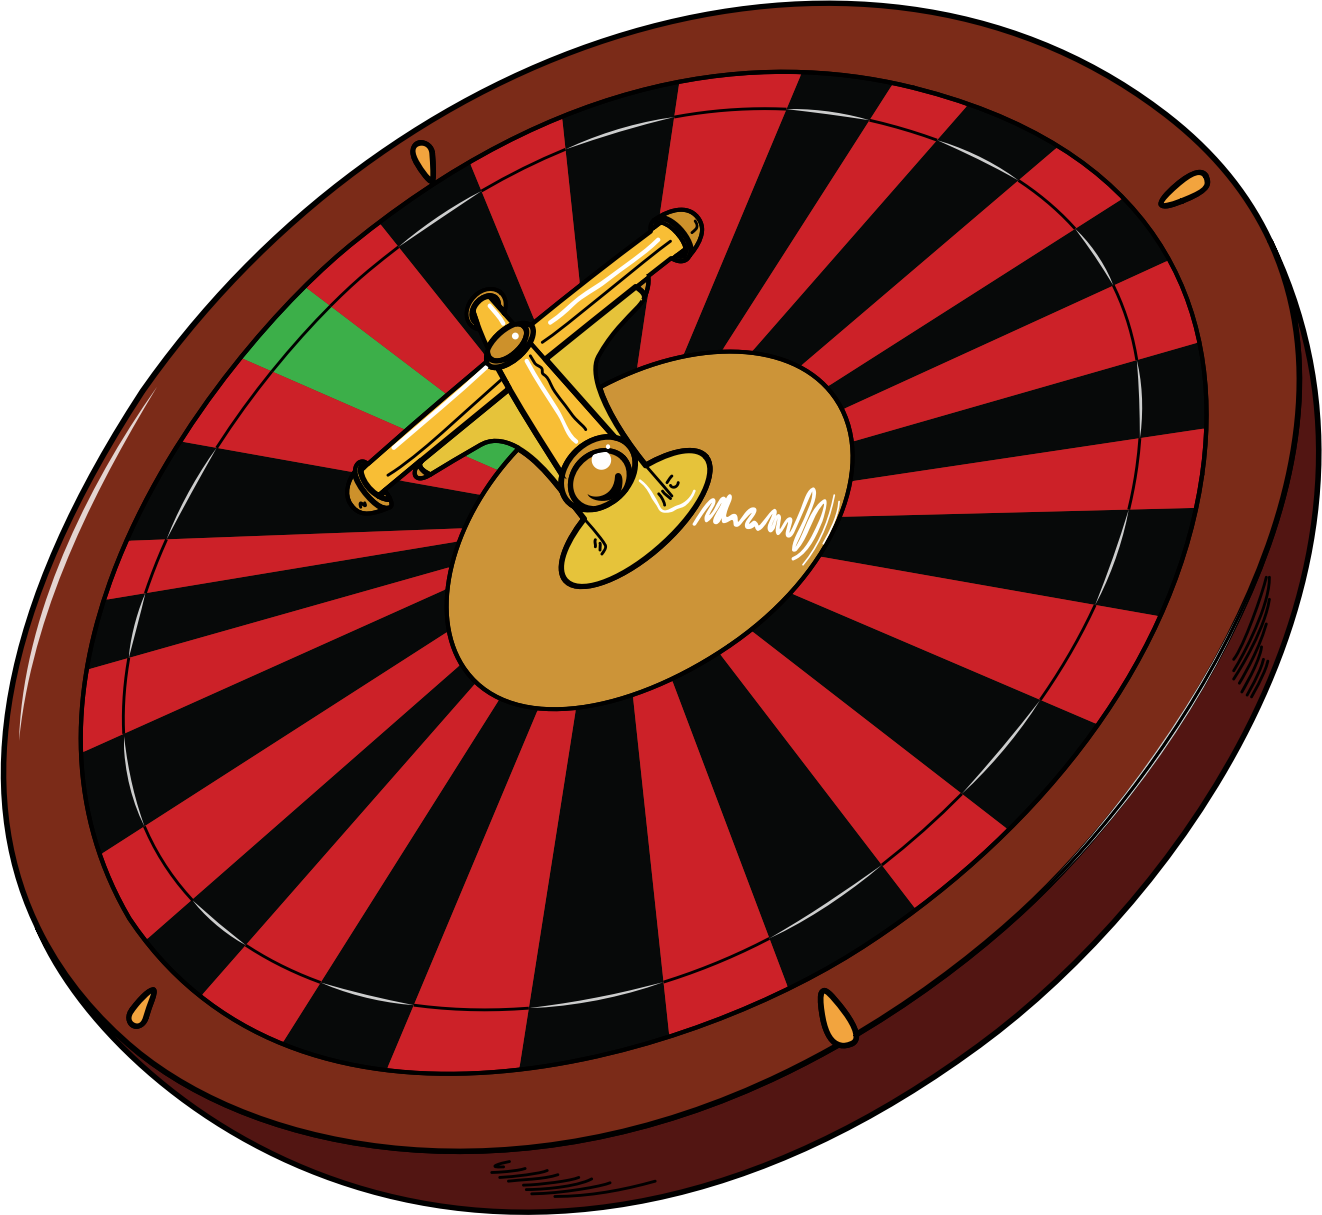 picture download Big image png. Roulette wheel clipart.